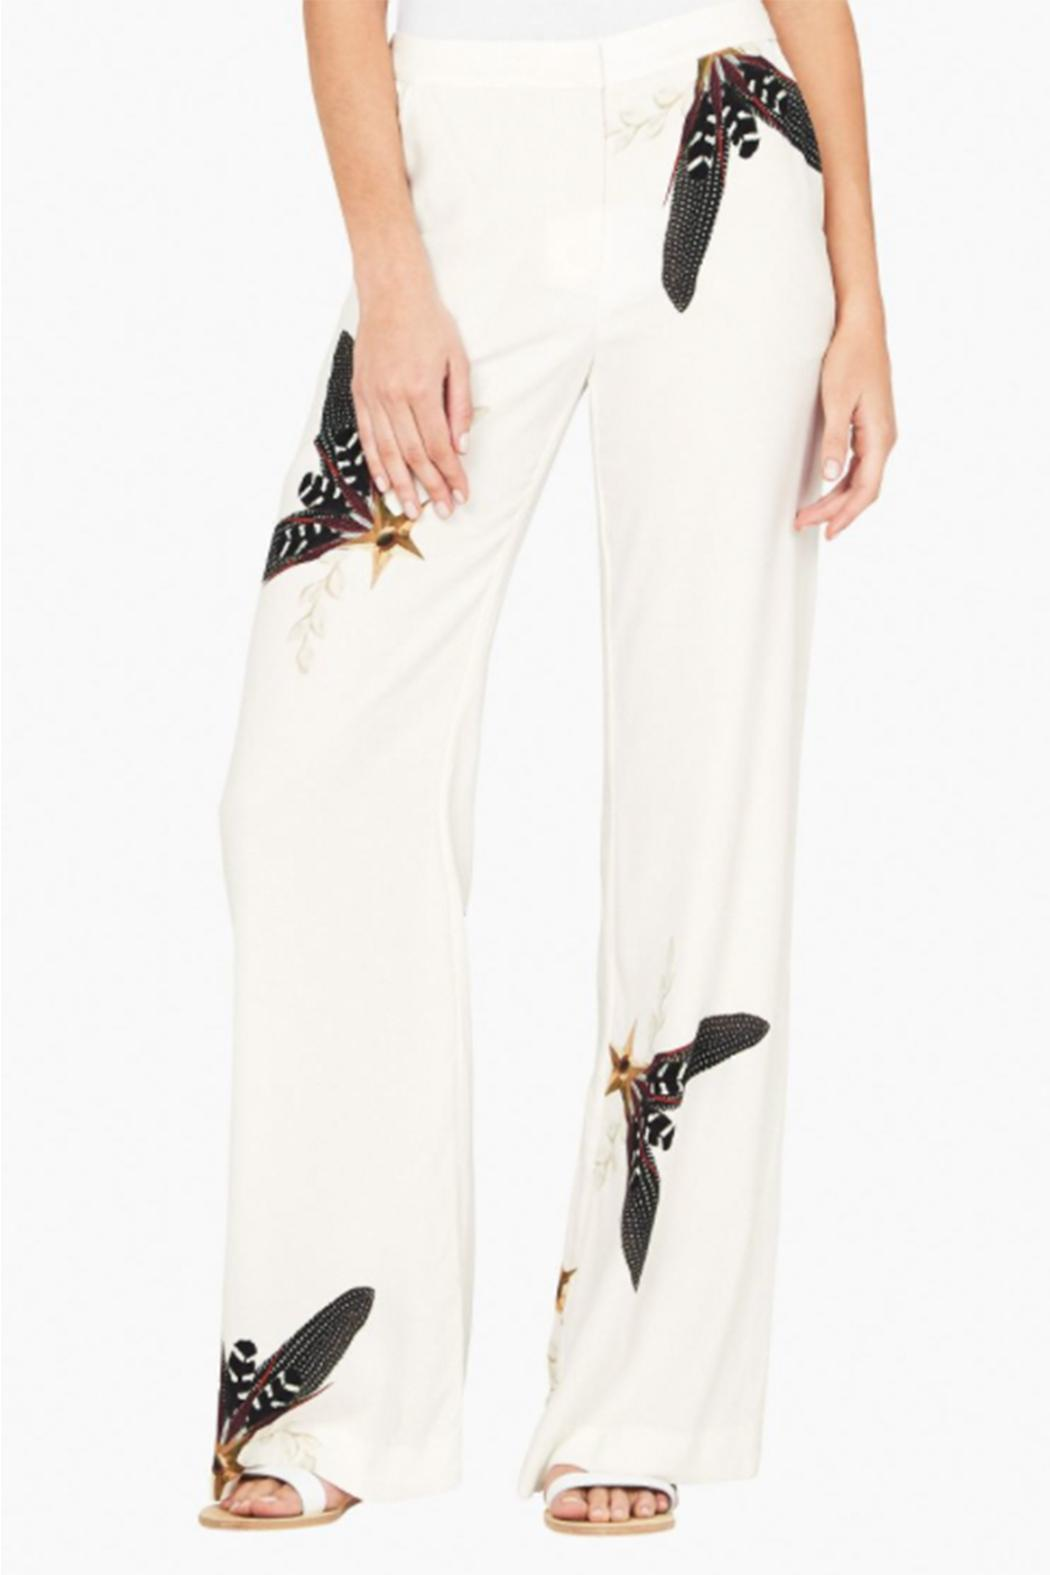 Sass Bide Instant Star Pants From Los Angeles By Tags Boutique Shoptiques